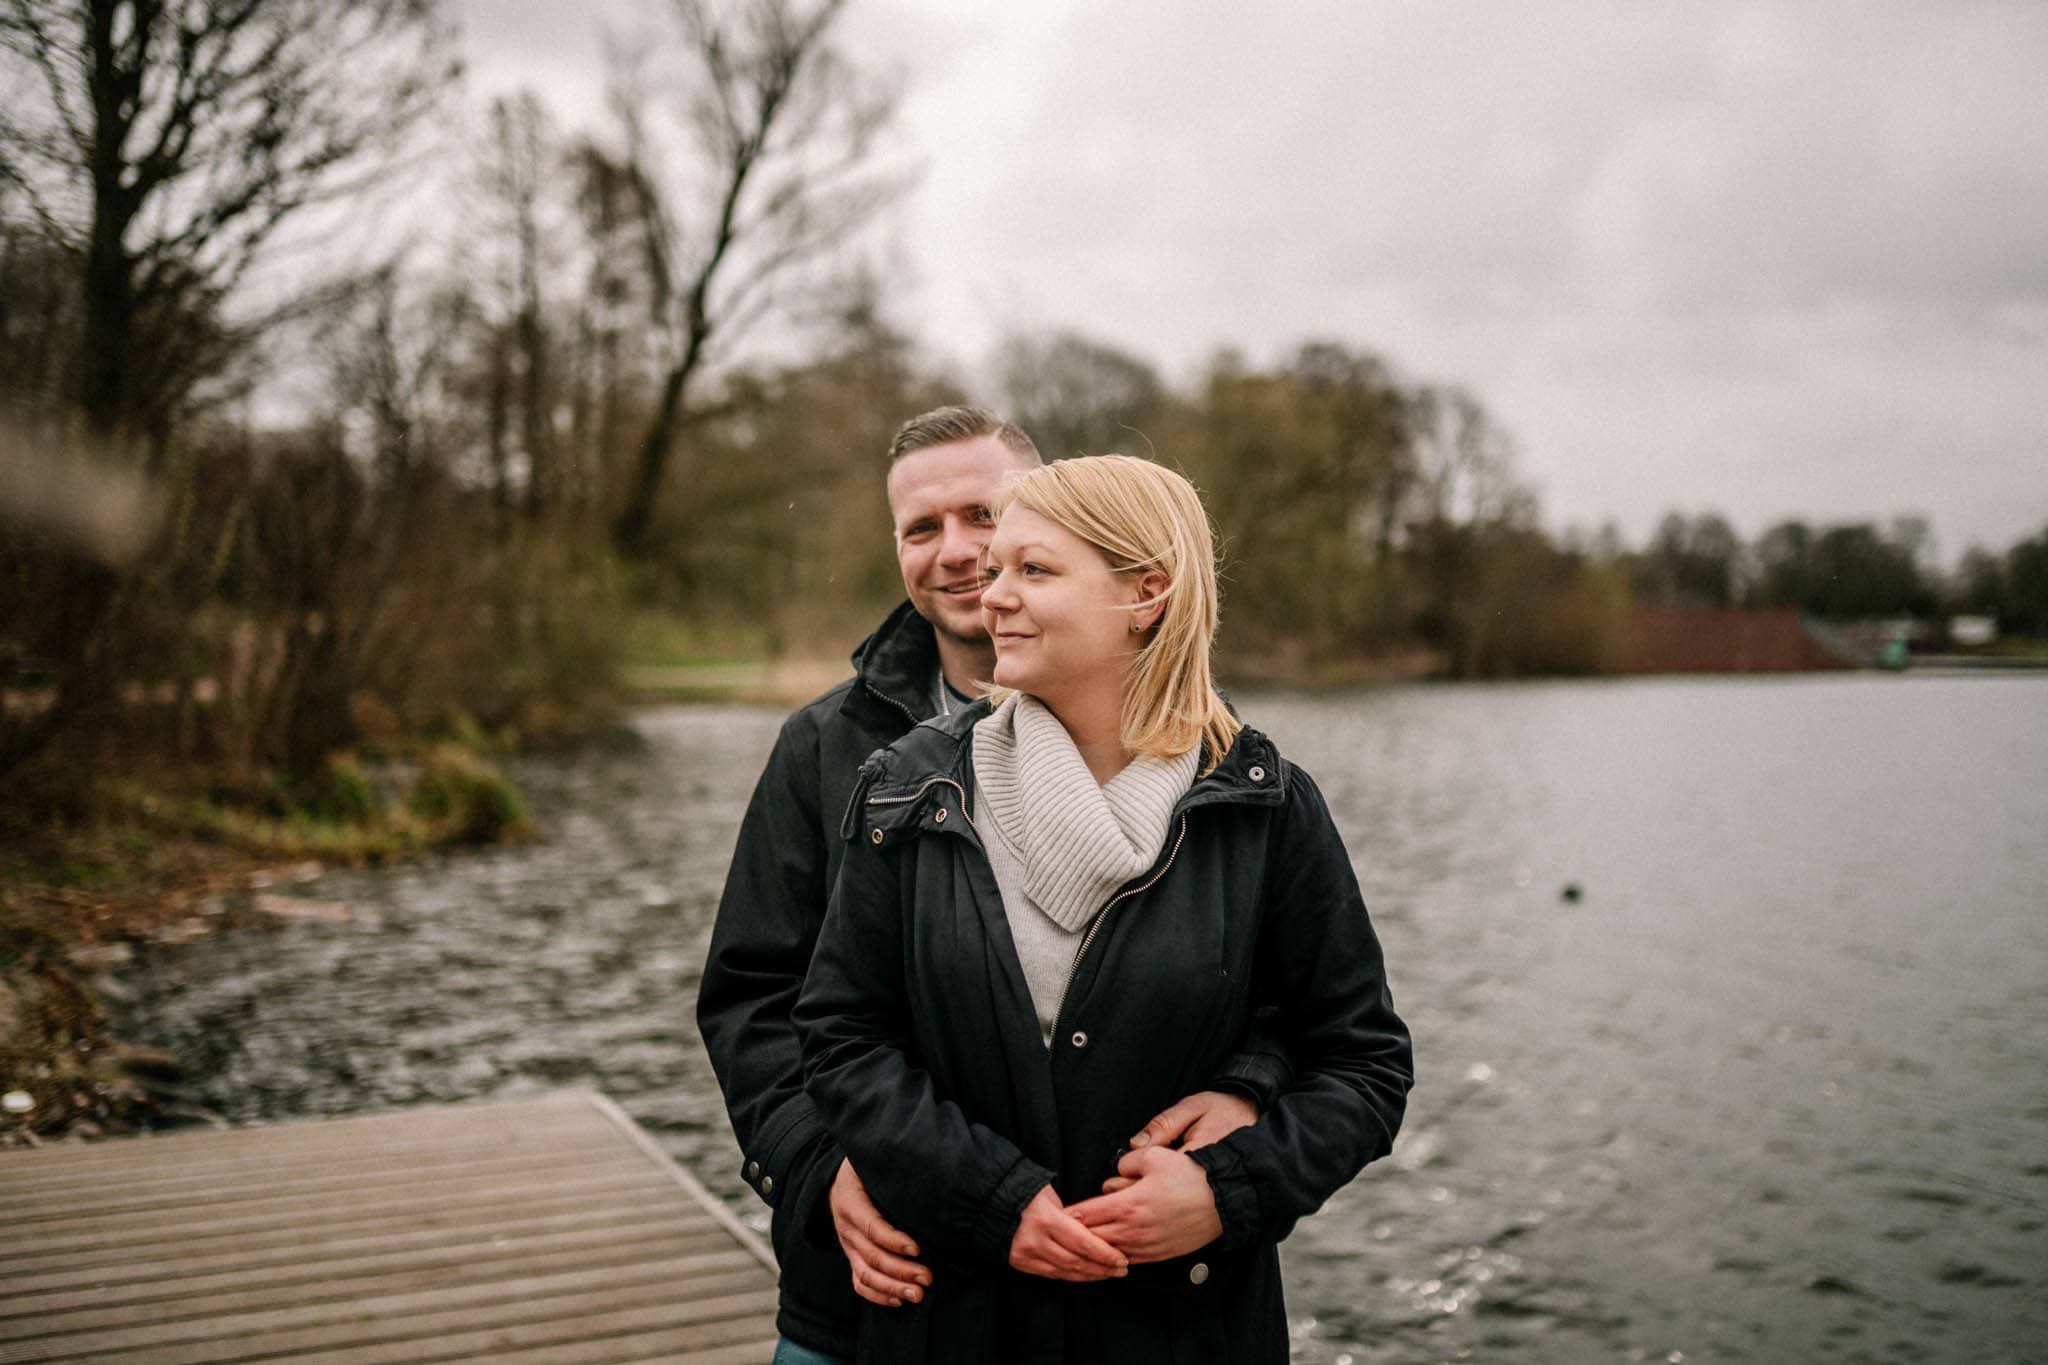 Engagementshooting, Hochzeitsfieber by Photo-Schomburg, Pärchenshoot, Hamburg, Elbe, Hamburger Hafen, Hochzeitsfotograf, Wedding, Coupleshoot, Hochzeitsfotografie-5-14